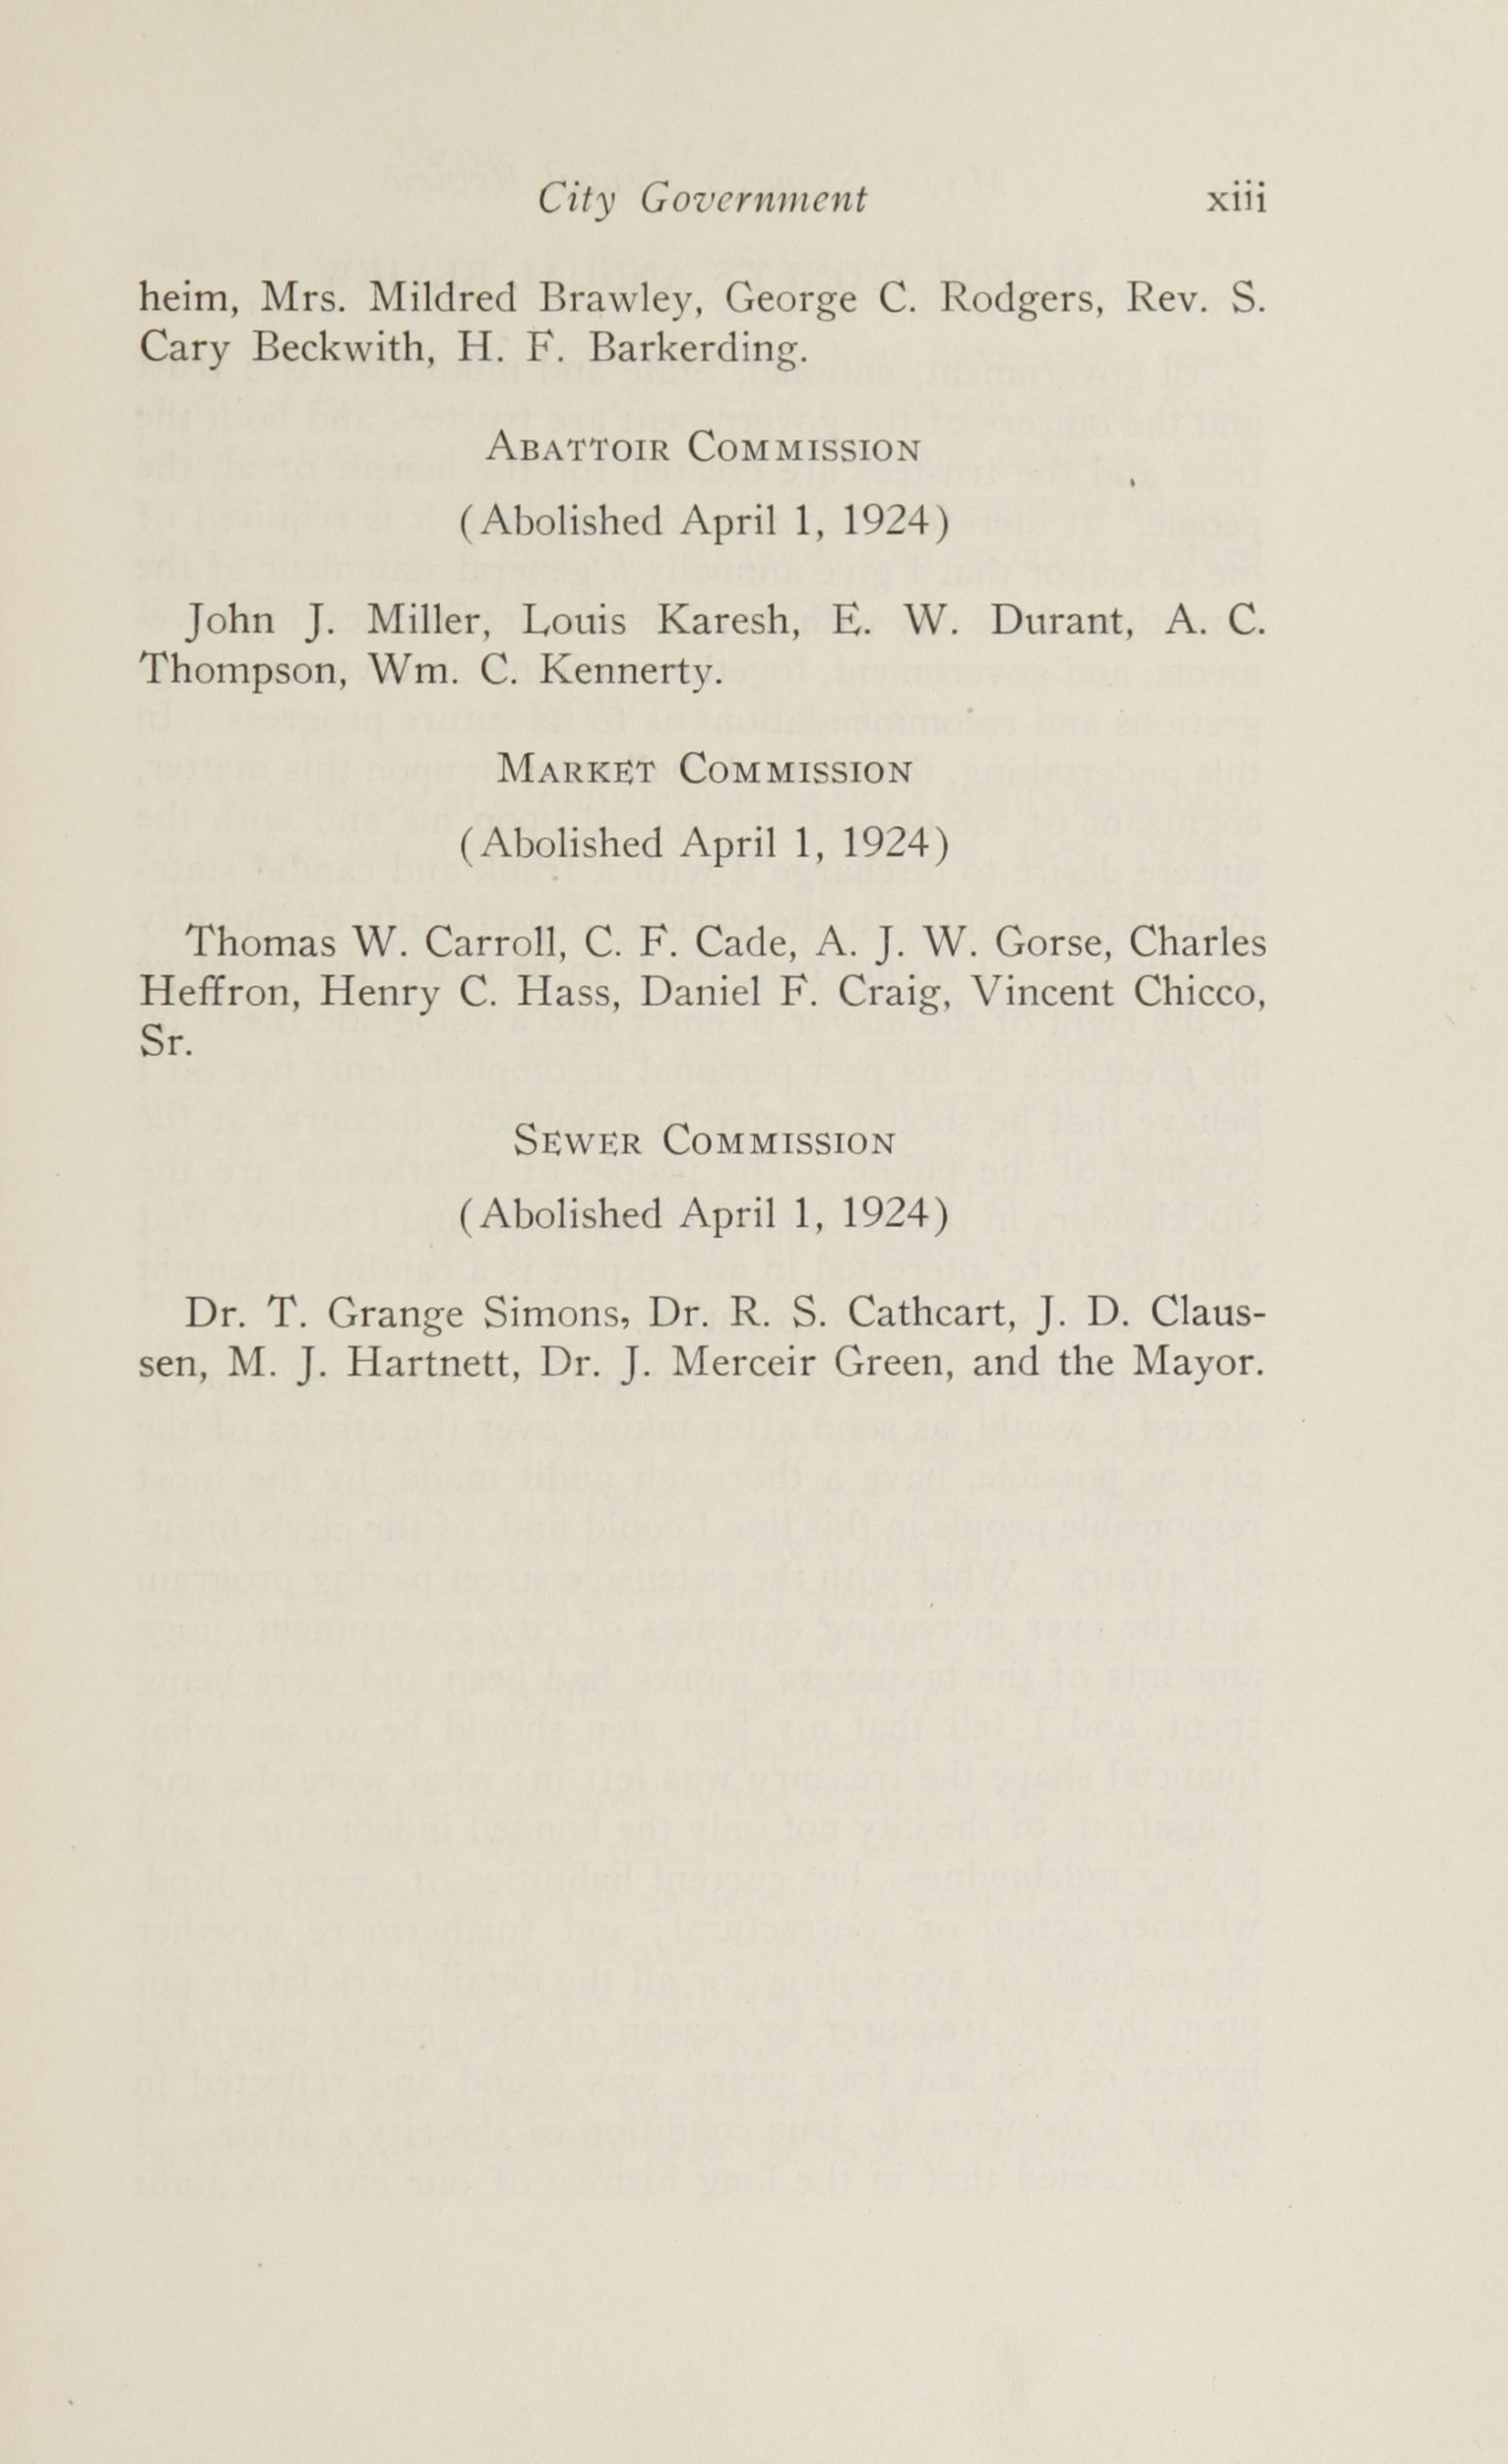 Charleston Yearbook, 1924, page xiii